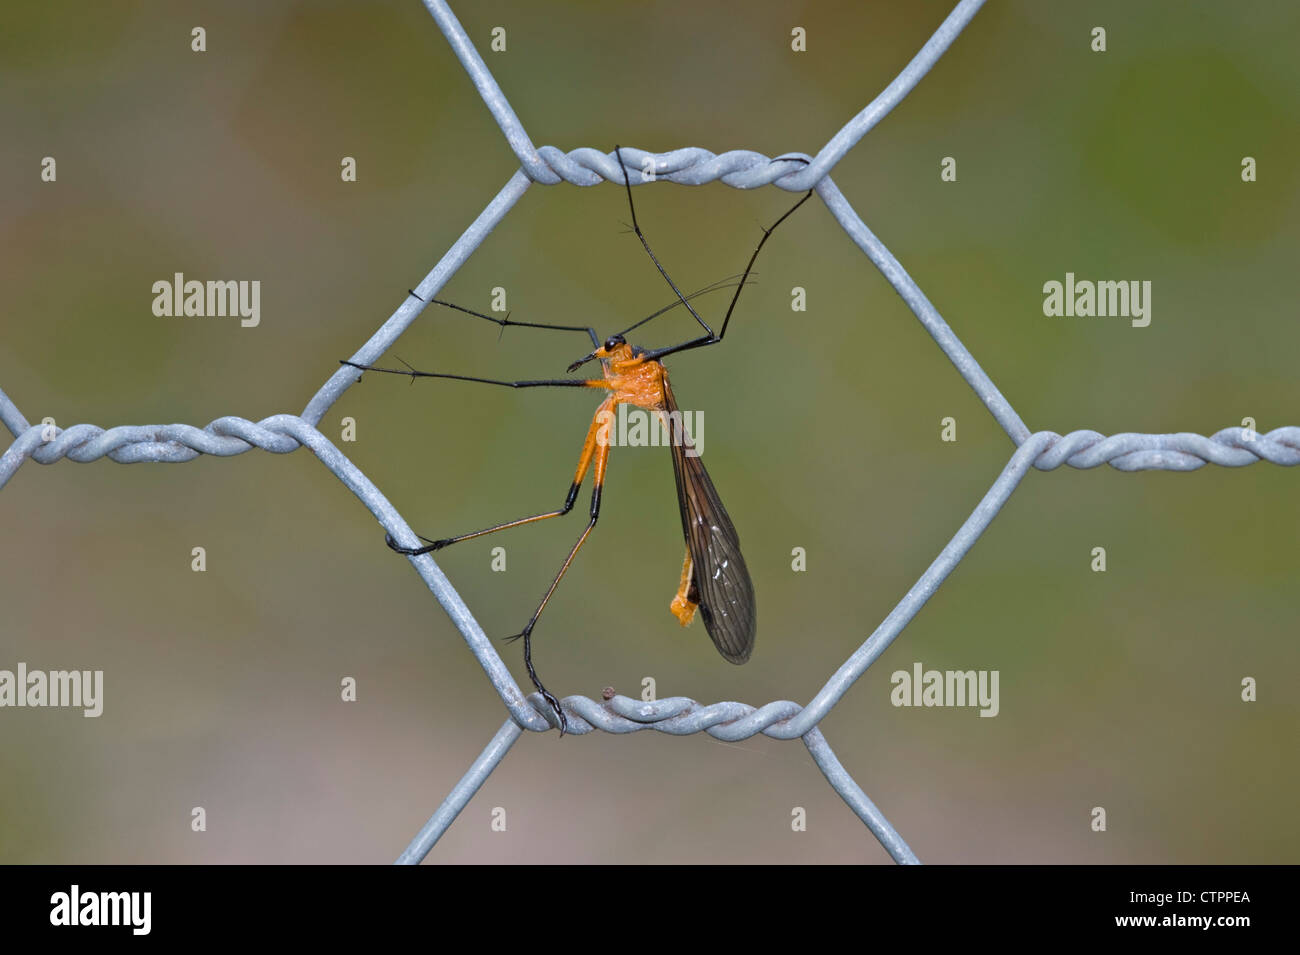 Chicken Wire Stockfotos & Chicken Wire Bilder - Alamy